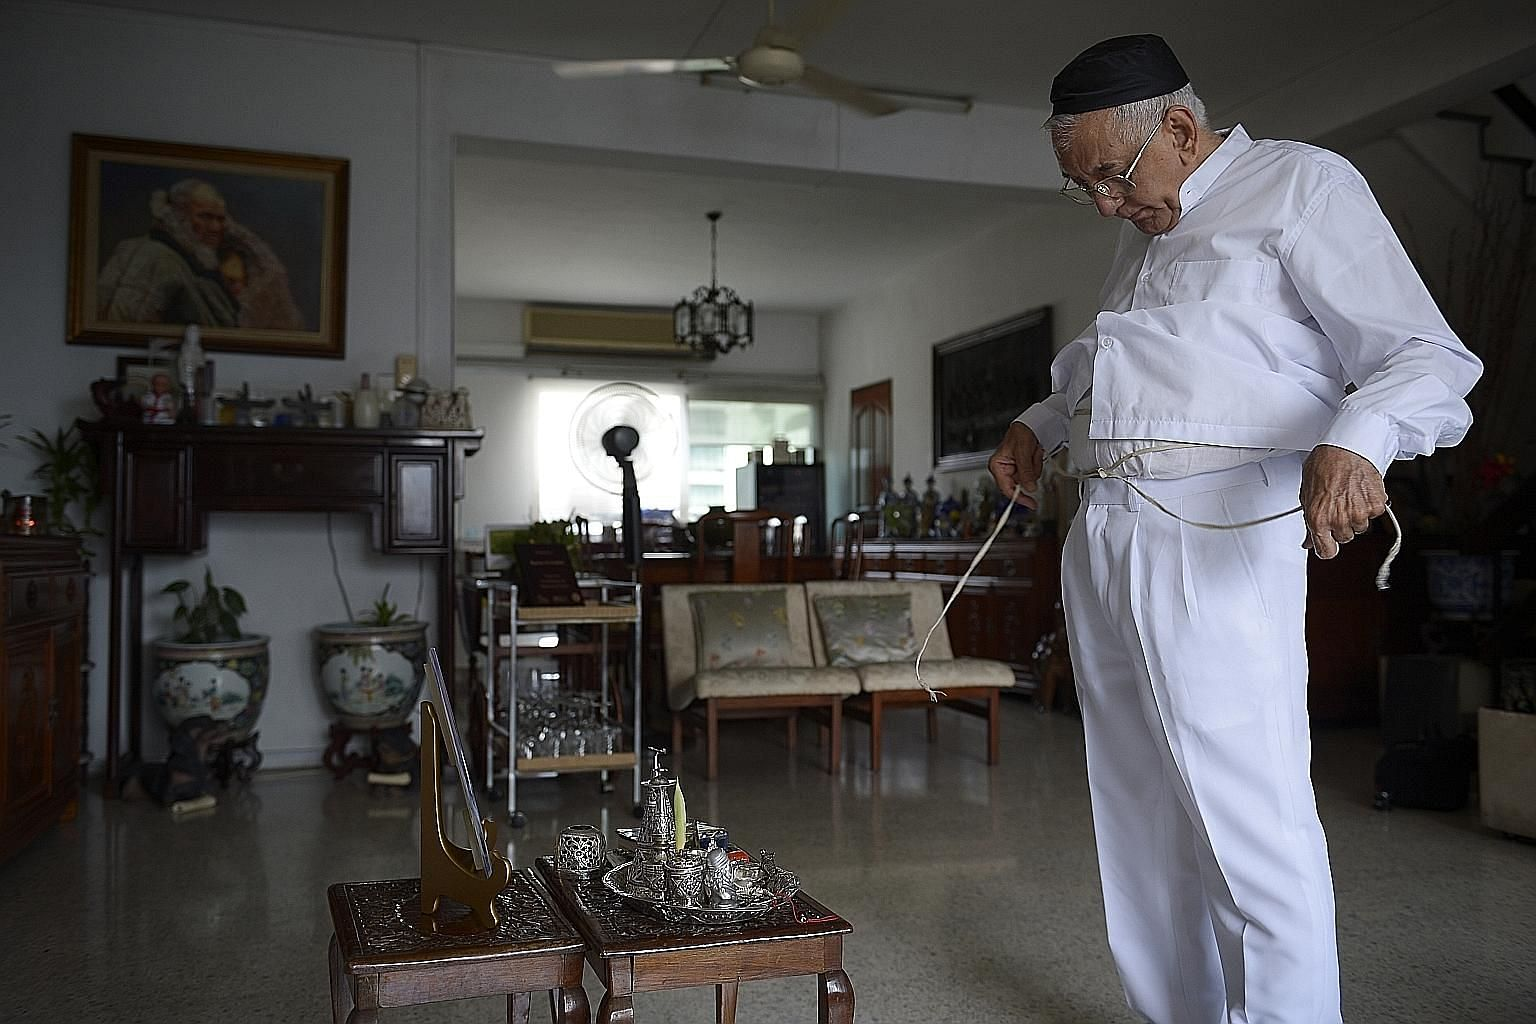 Mr Rustom Ghadiali, president of the Parsi Zoroastrian Association and one of the five priests here, praying at home.